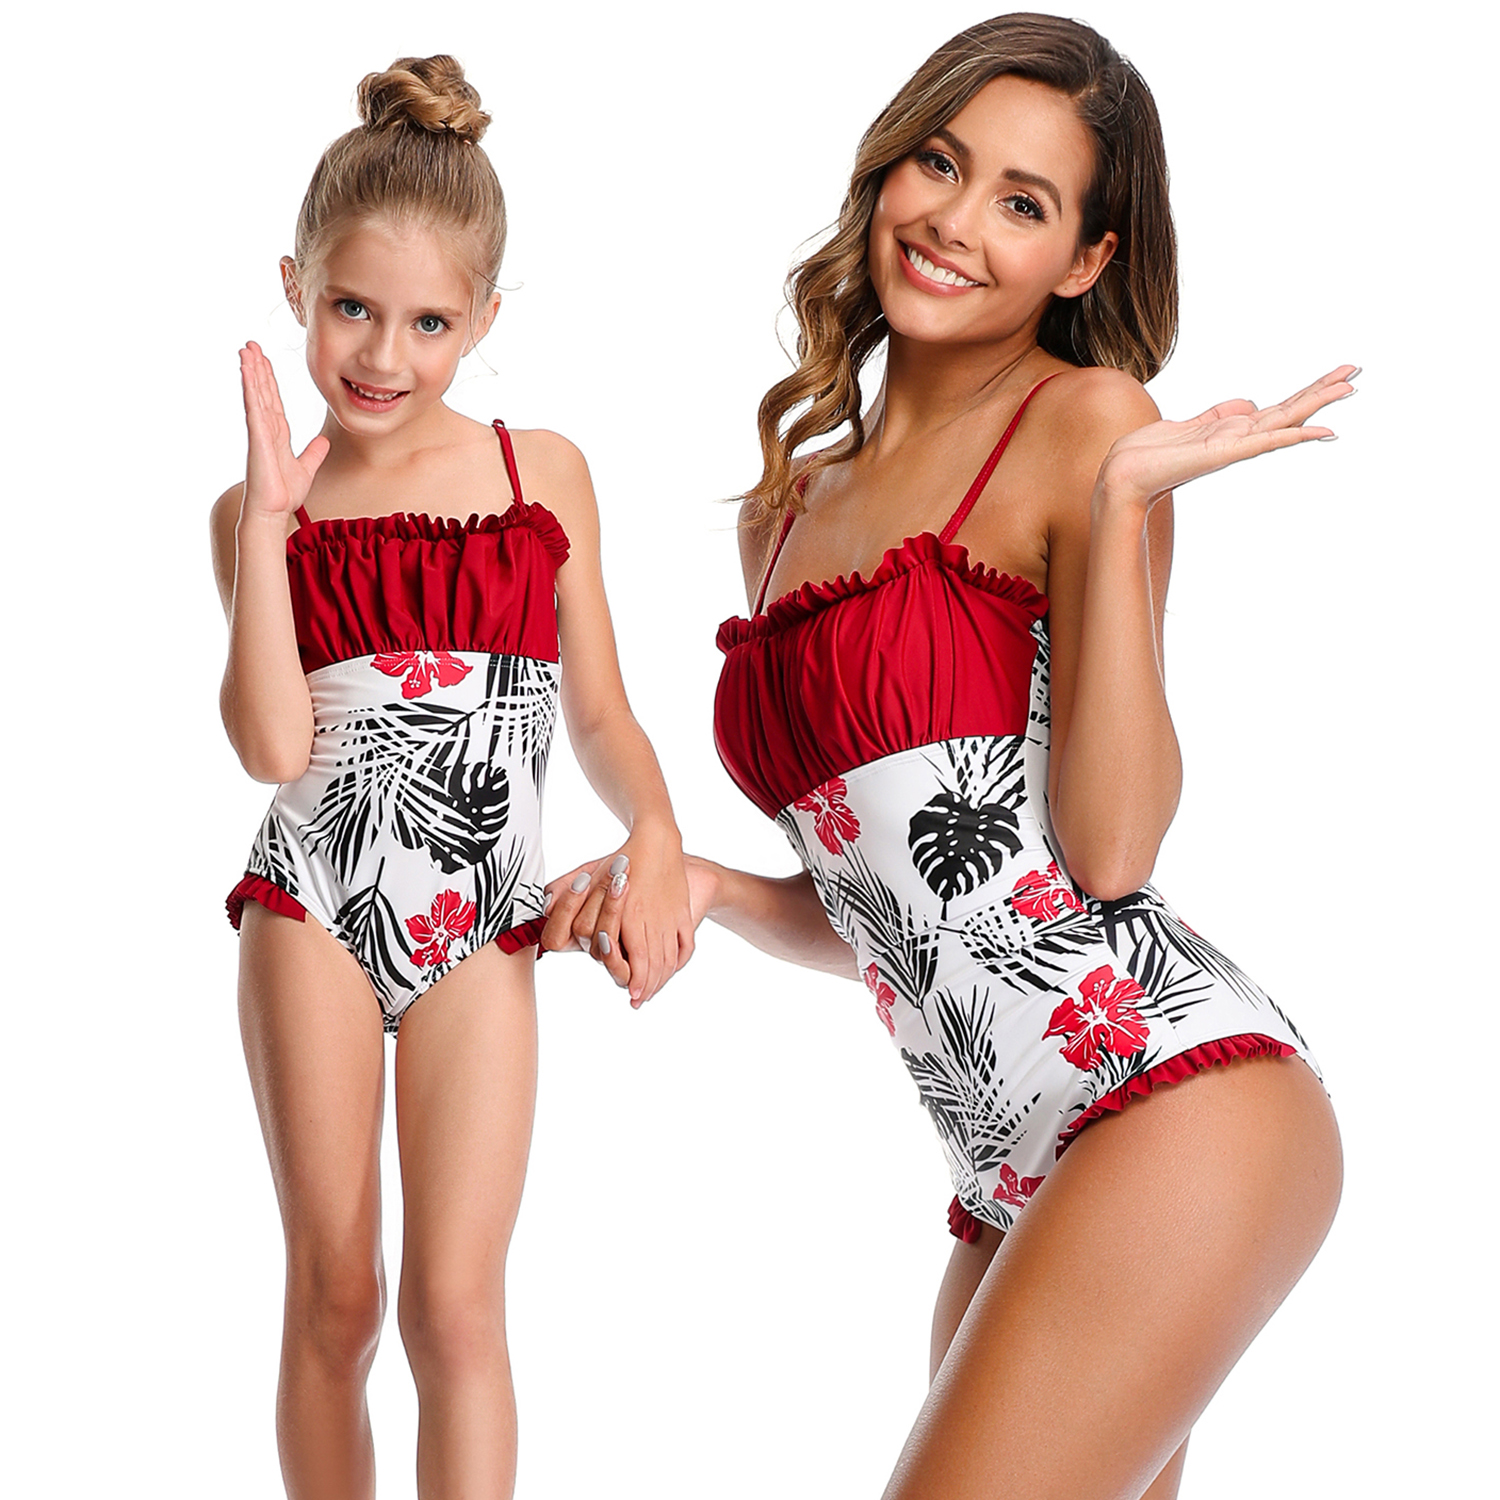 Ruffled Leaf Swimsuit Mother Daughter Swimwear Mommy And Me Clothes Family Matching Outfits Look Mom And Baby Bathing Suit Dress